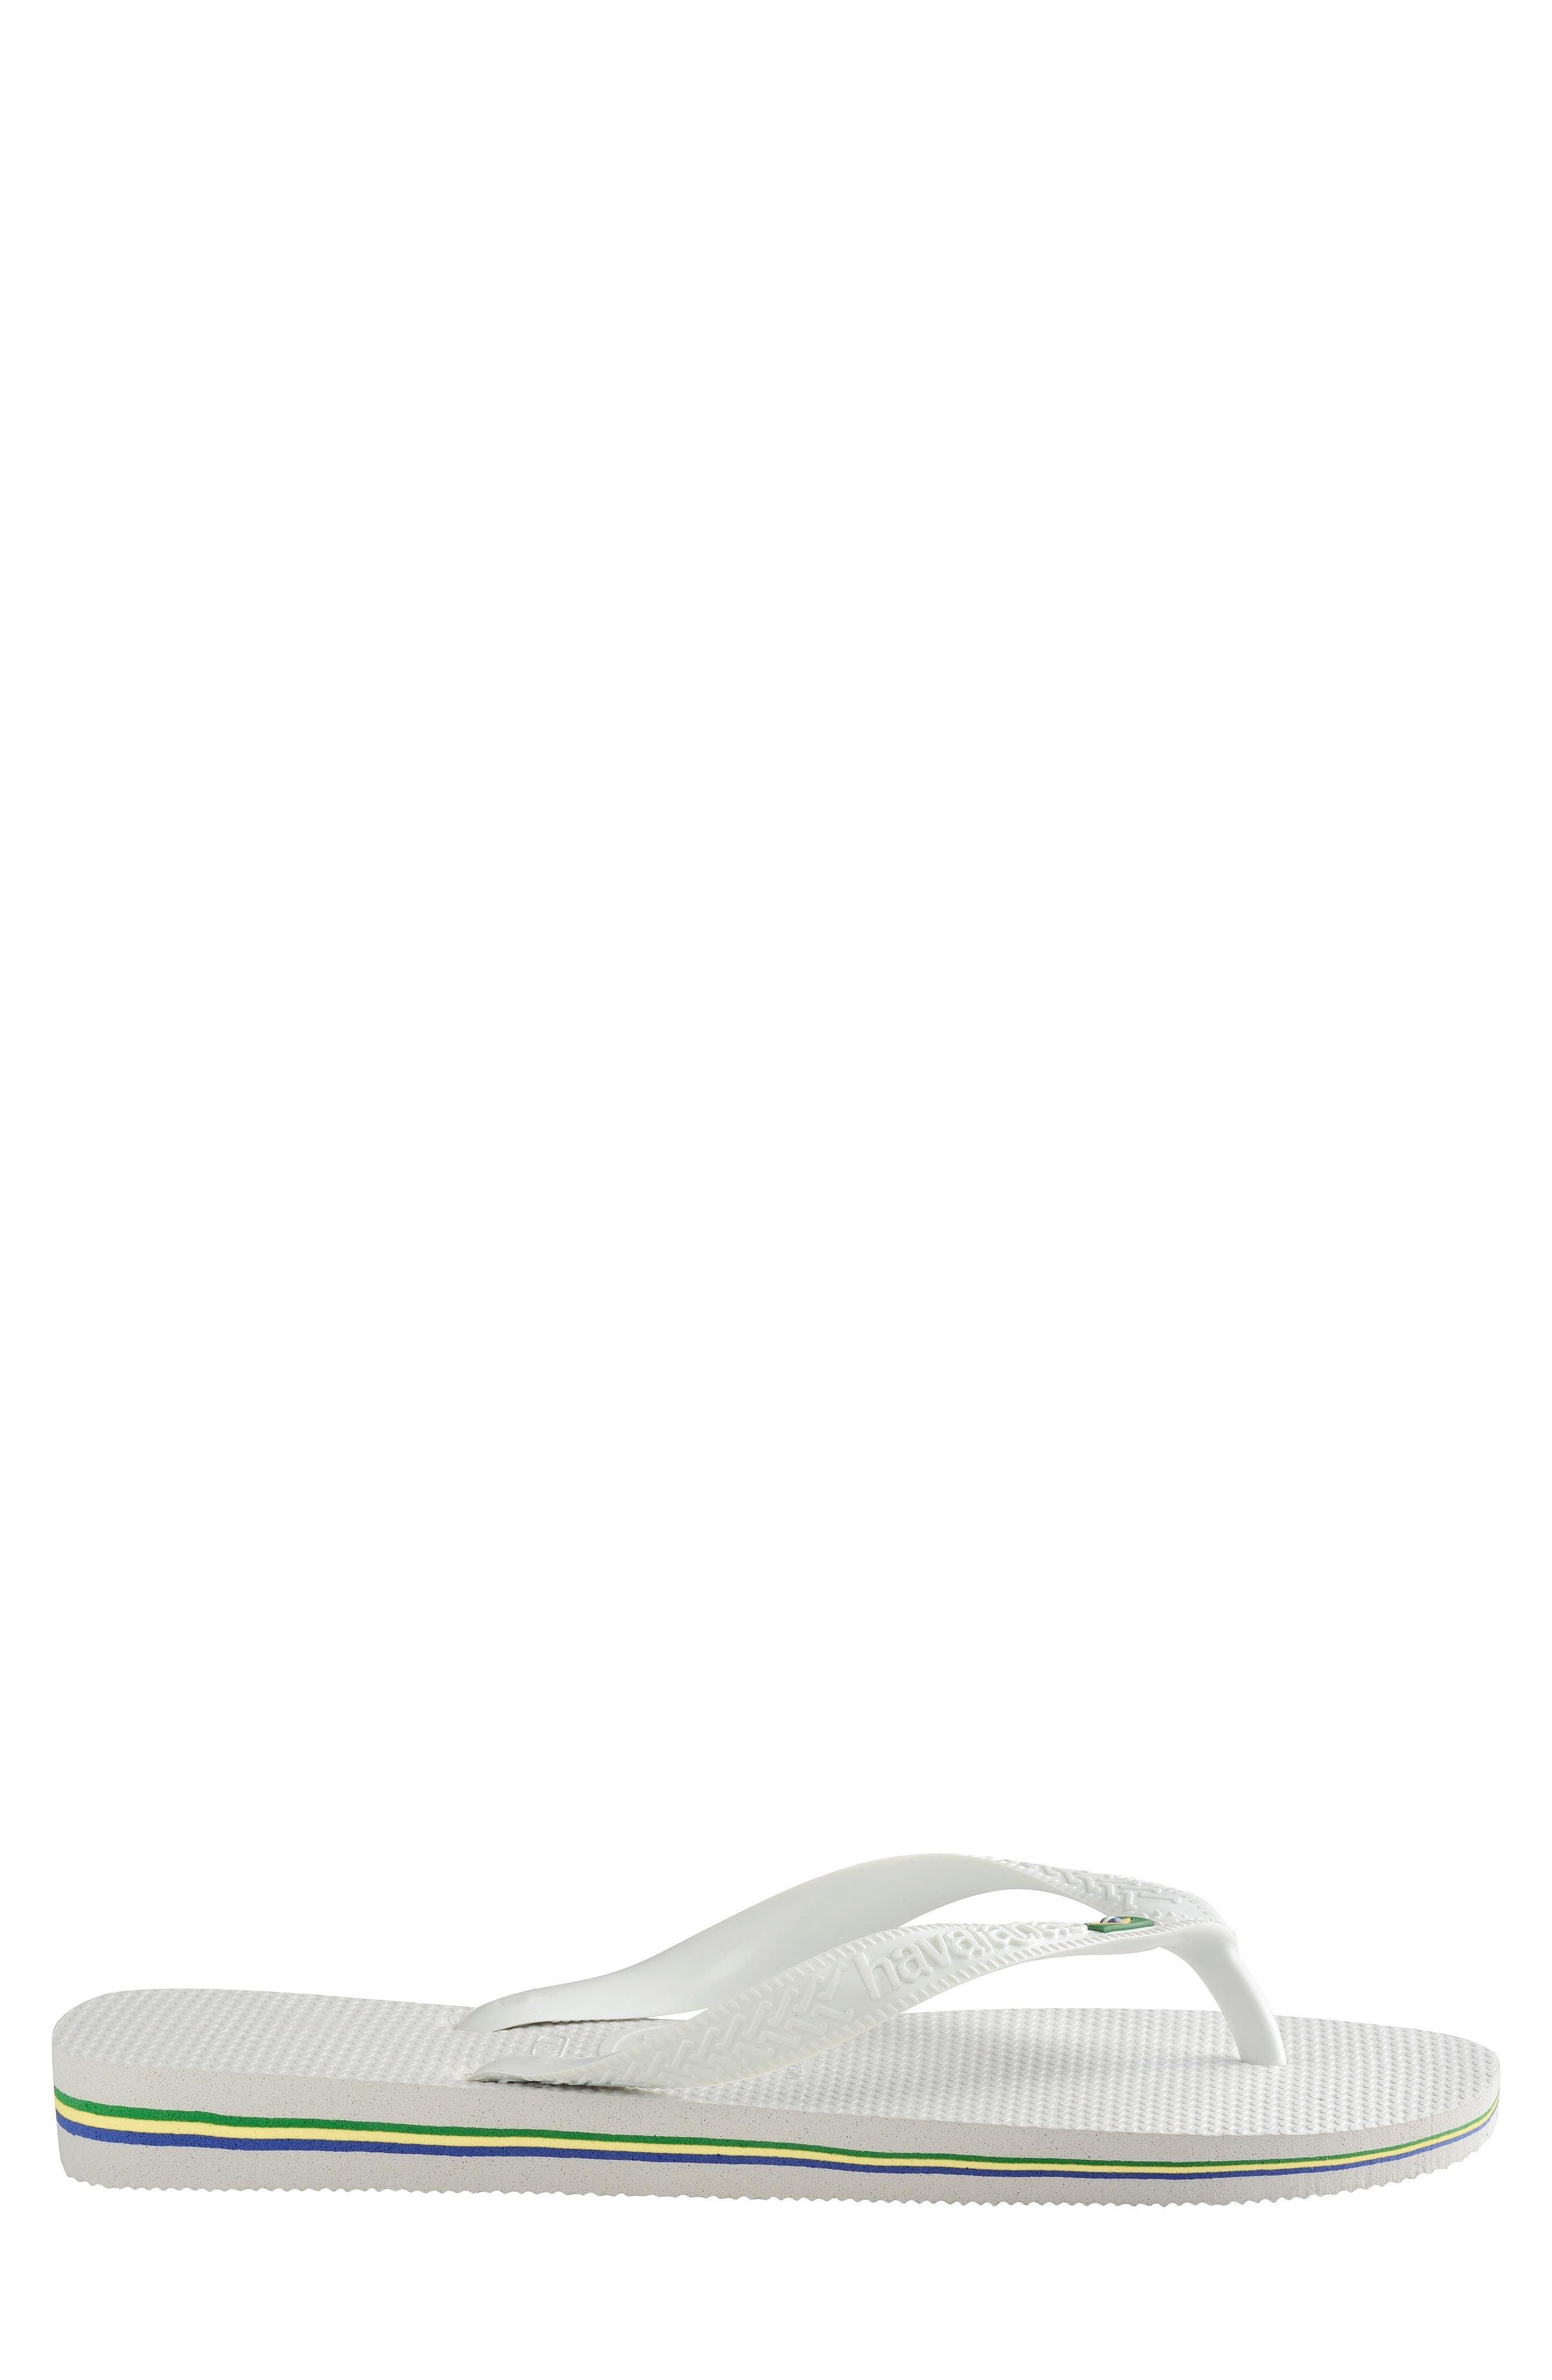 HAVAIANAS, 'Brazil' Flip Flop, Alternate thumbnail 3, color, WHITE